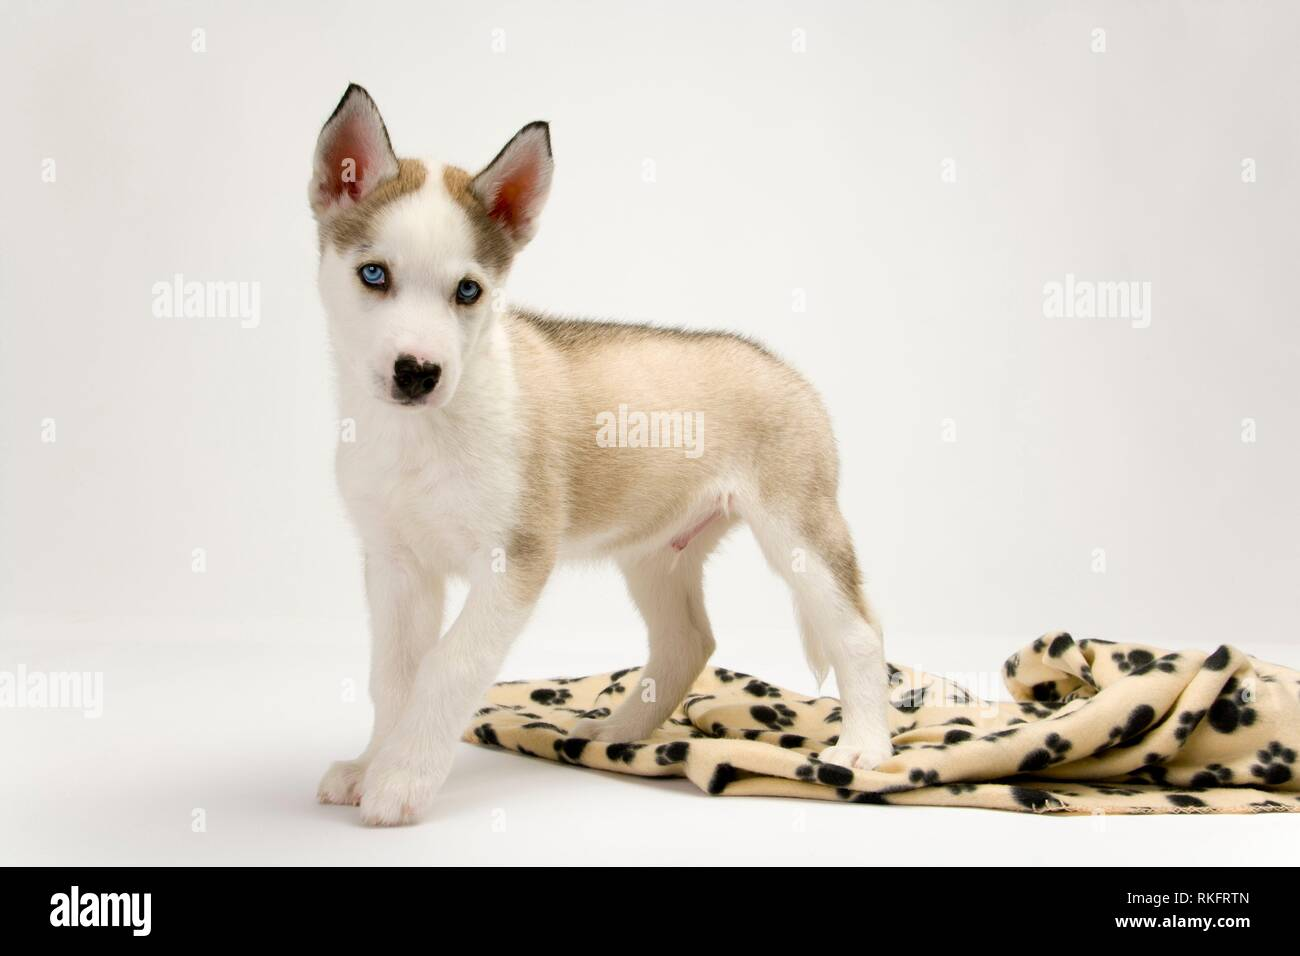 A very cute young Husky dog puppy with piercing blue eyes looking at the camera. - Stock Image